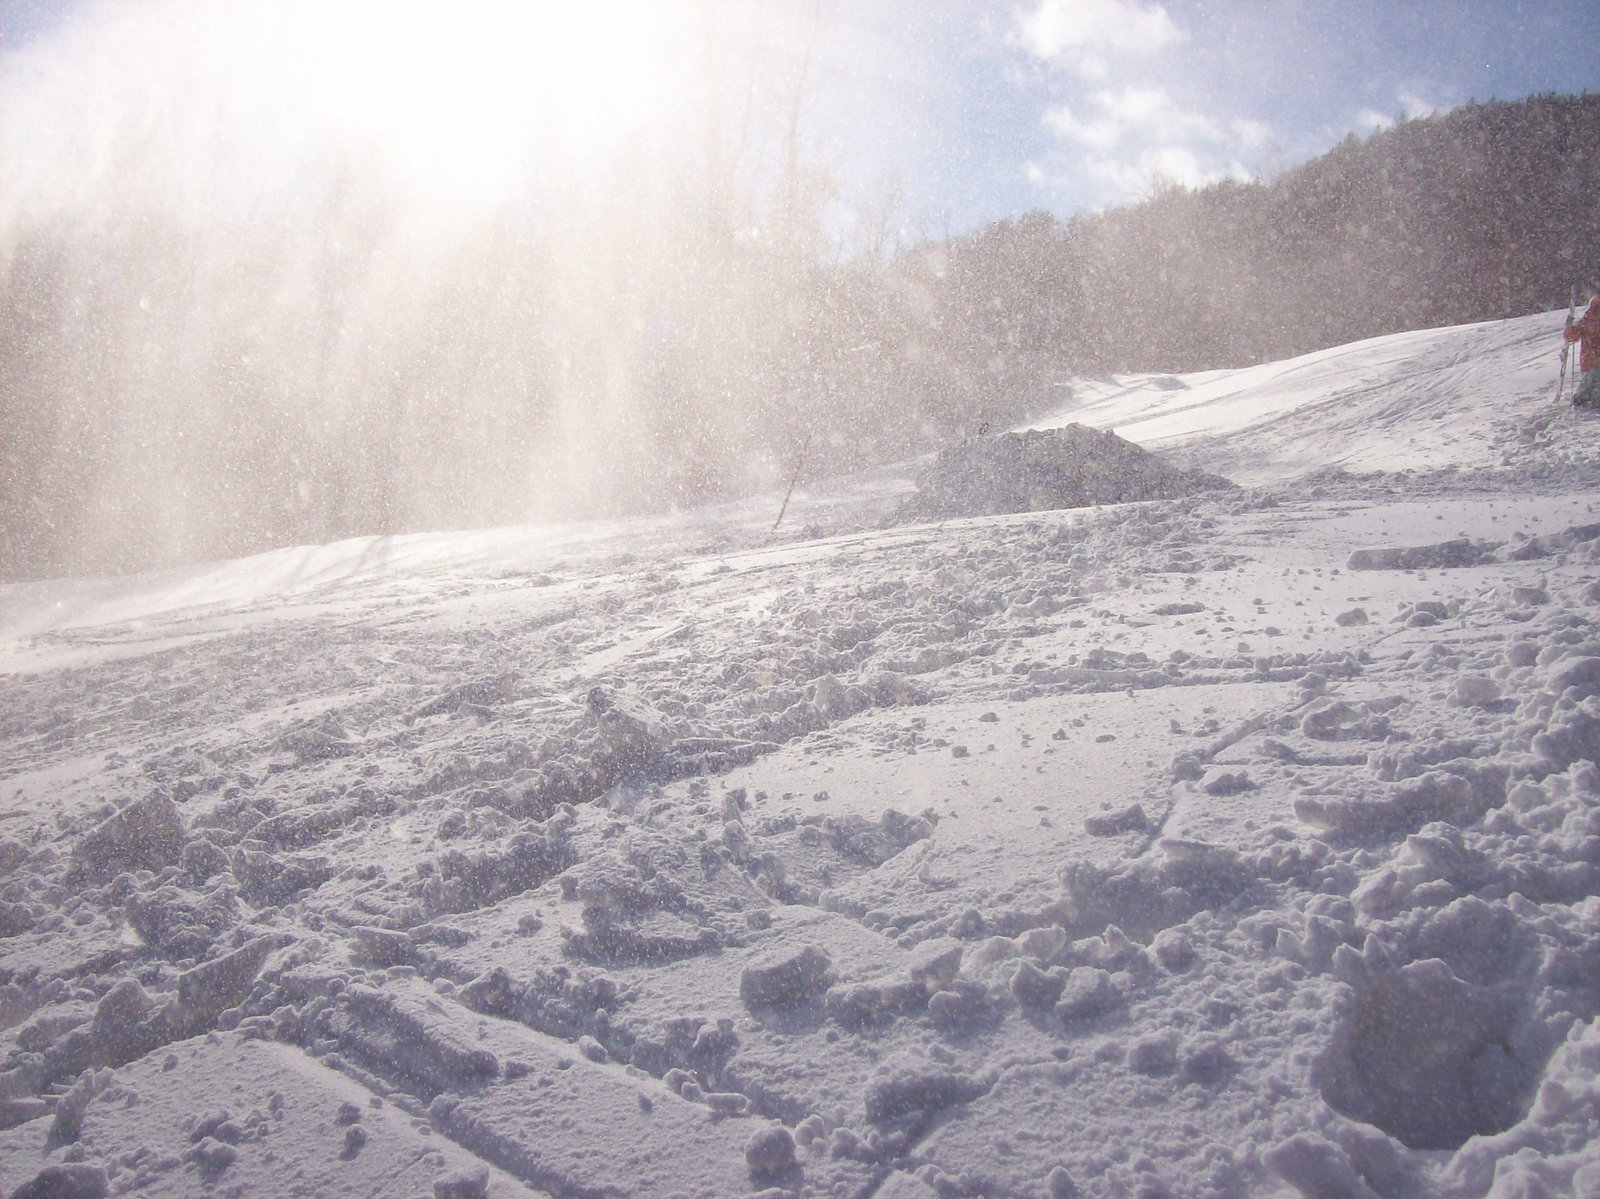 Whiteface Nov 11